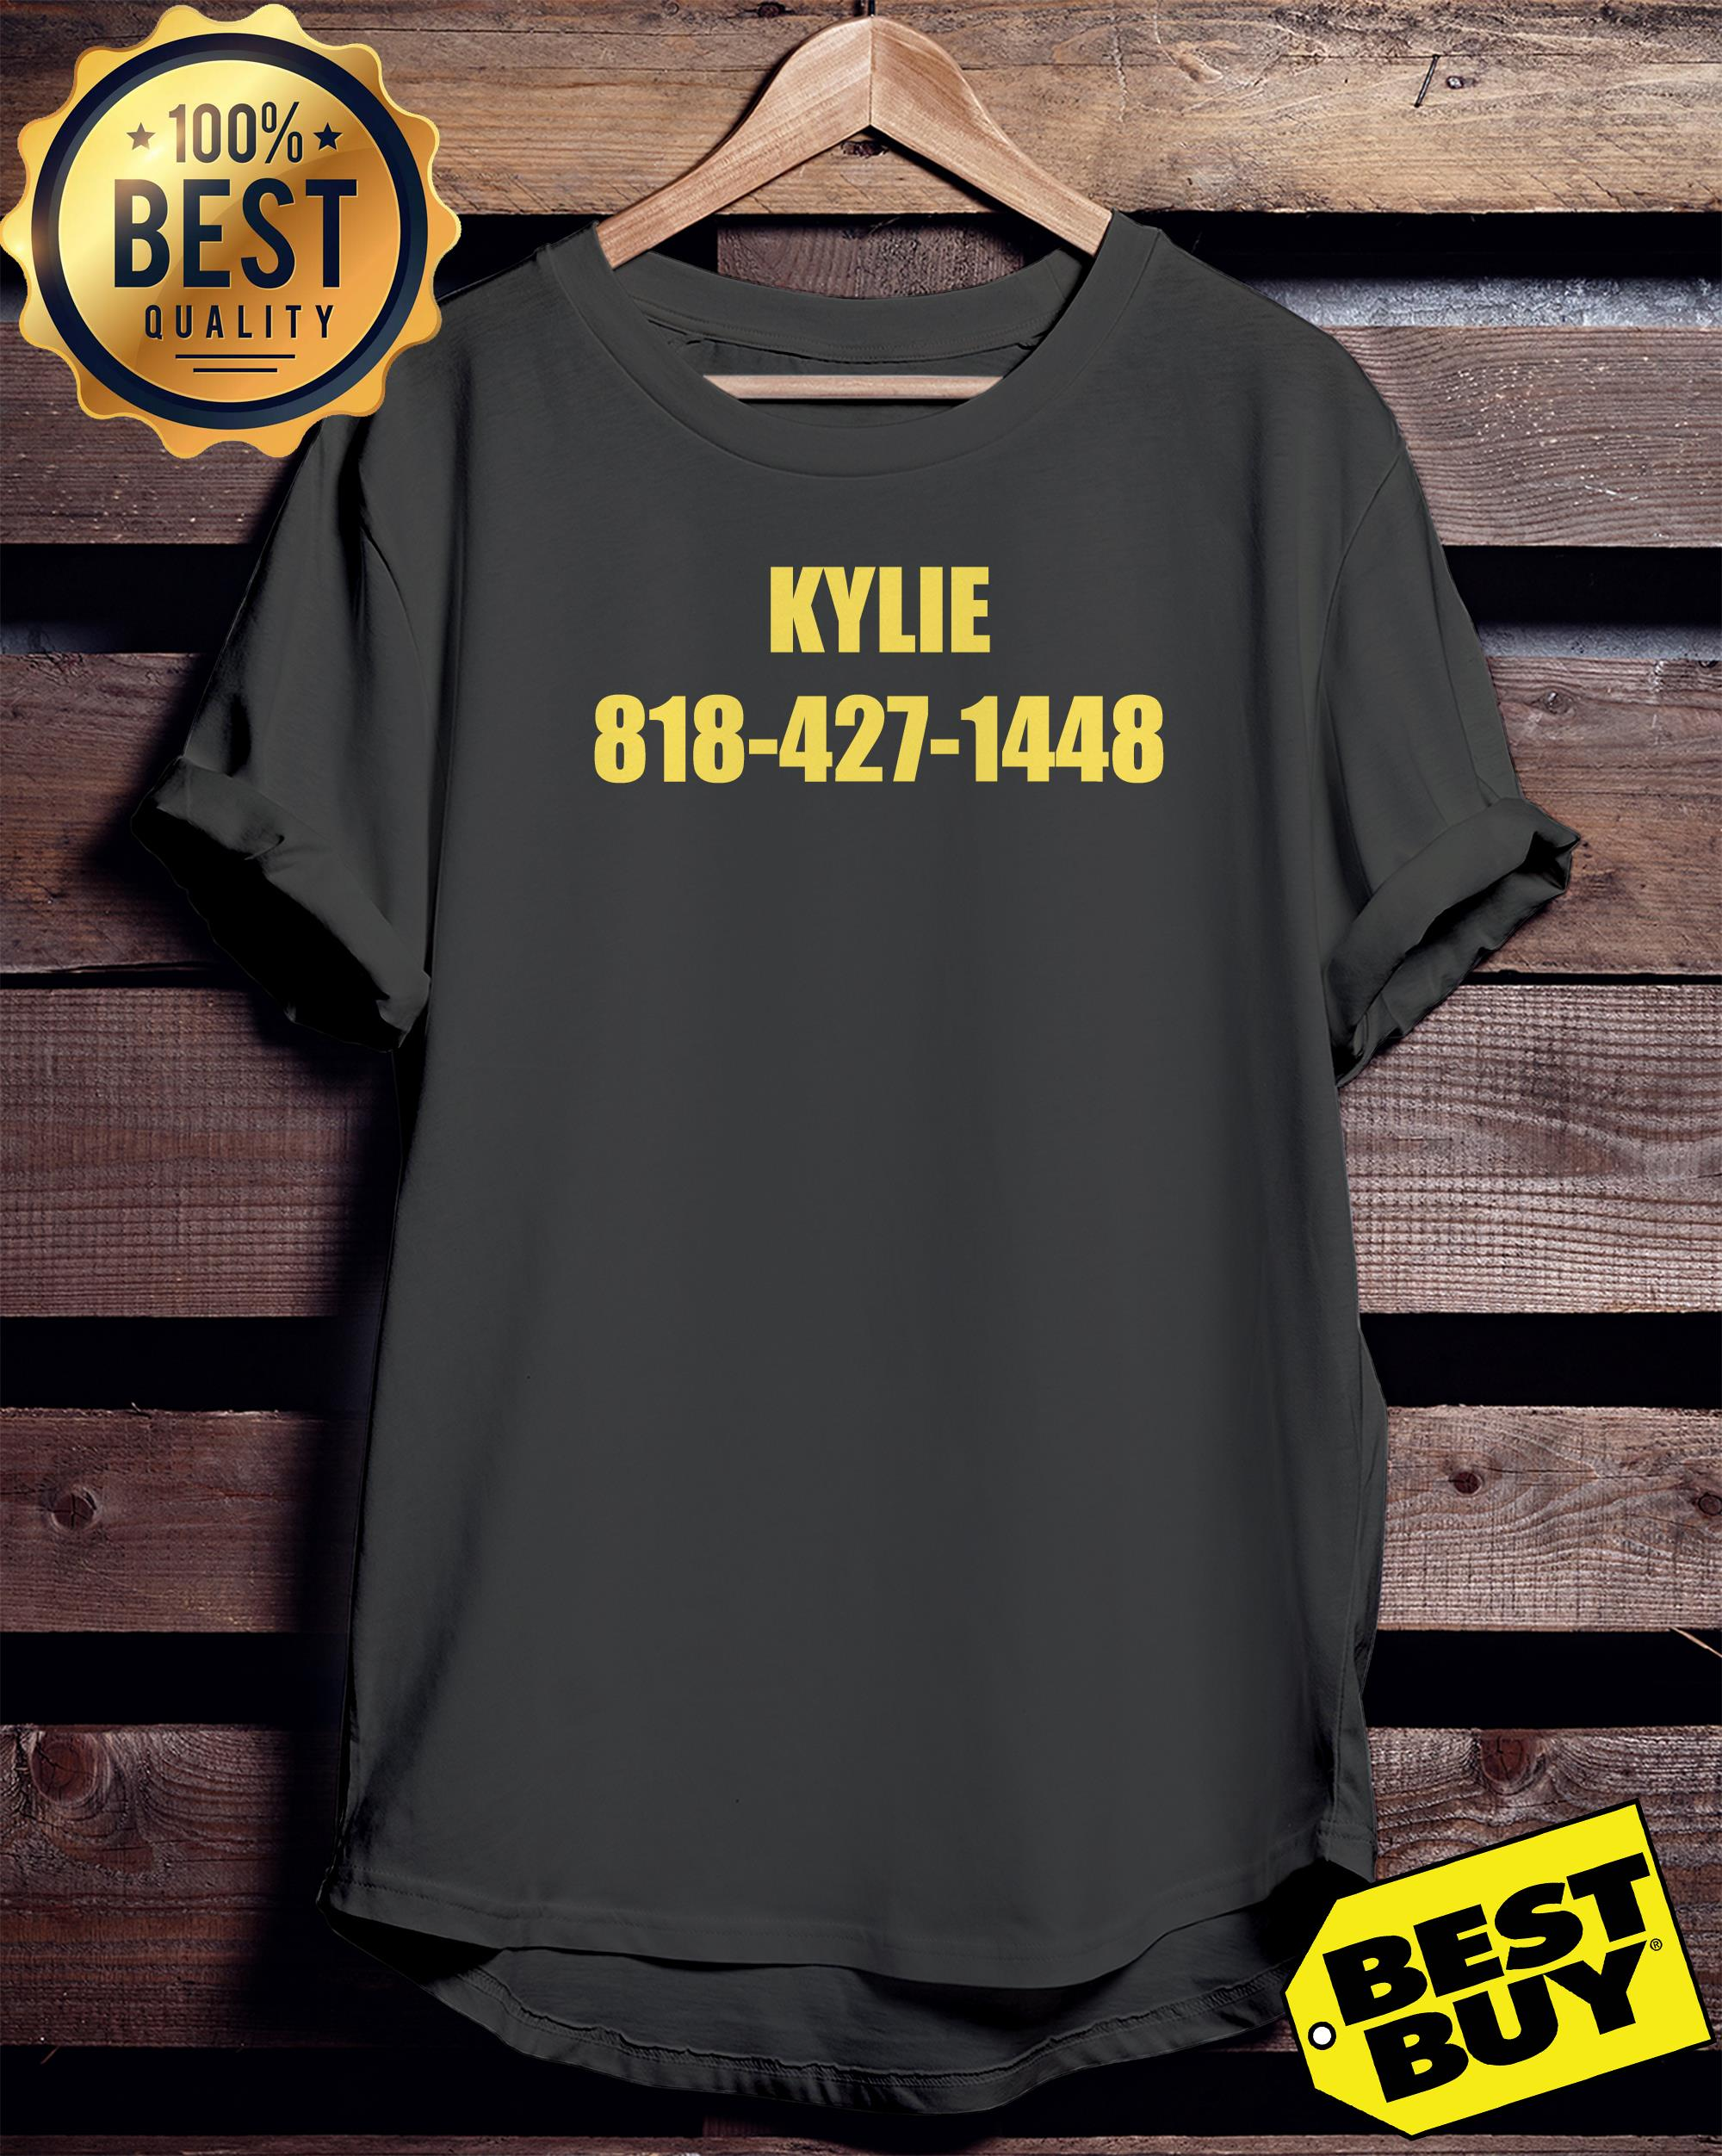 Kendall + Kylie Collection Call Me ladies tee